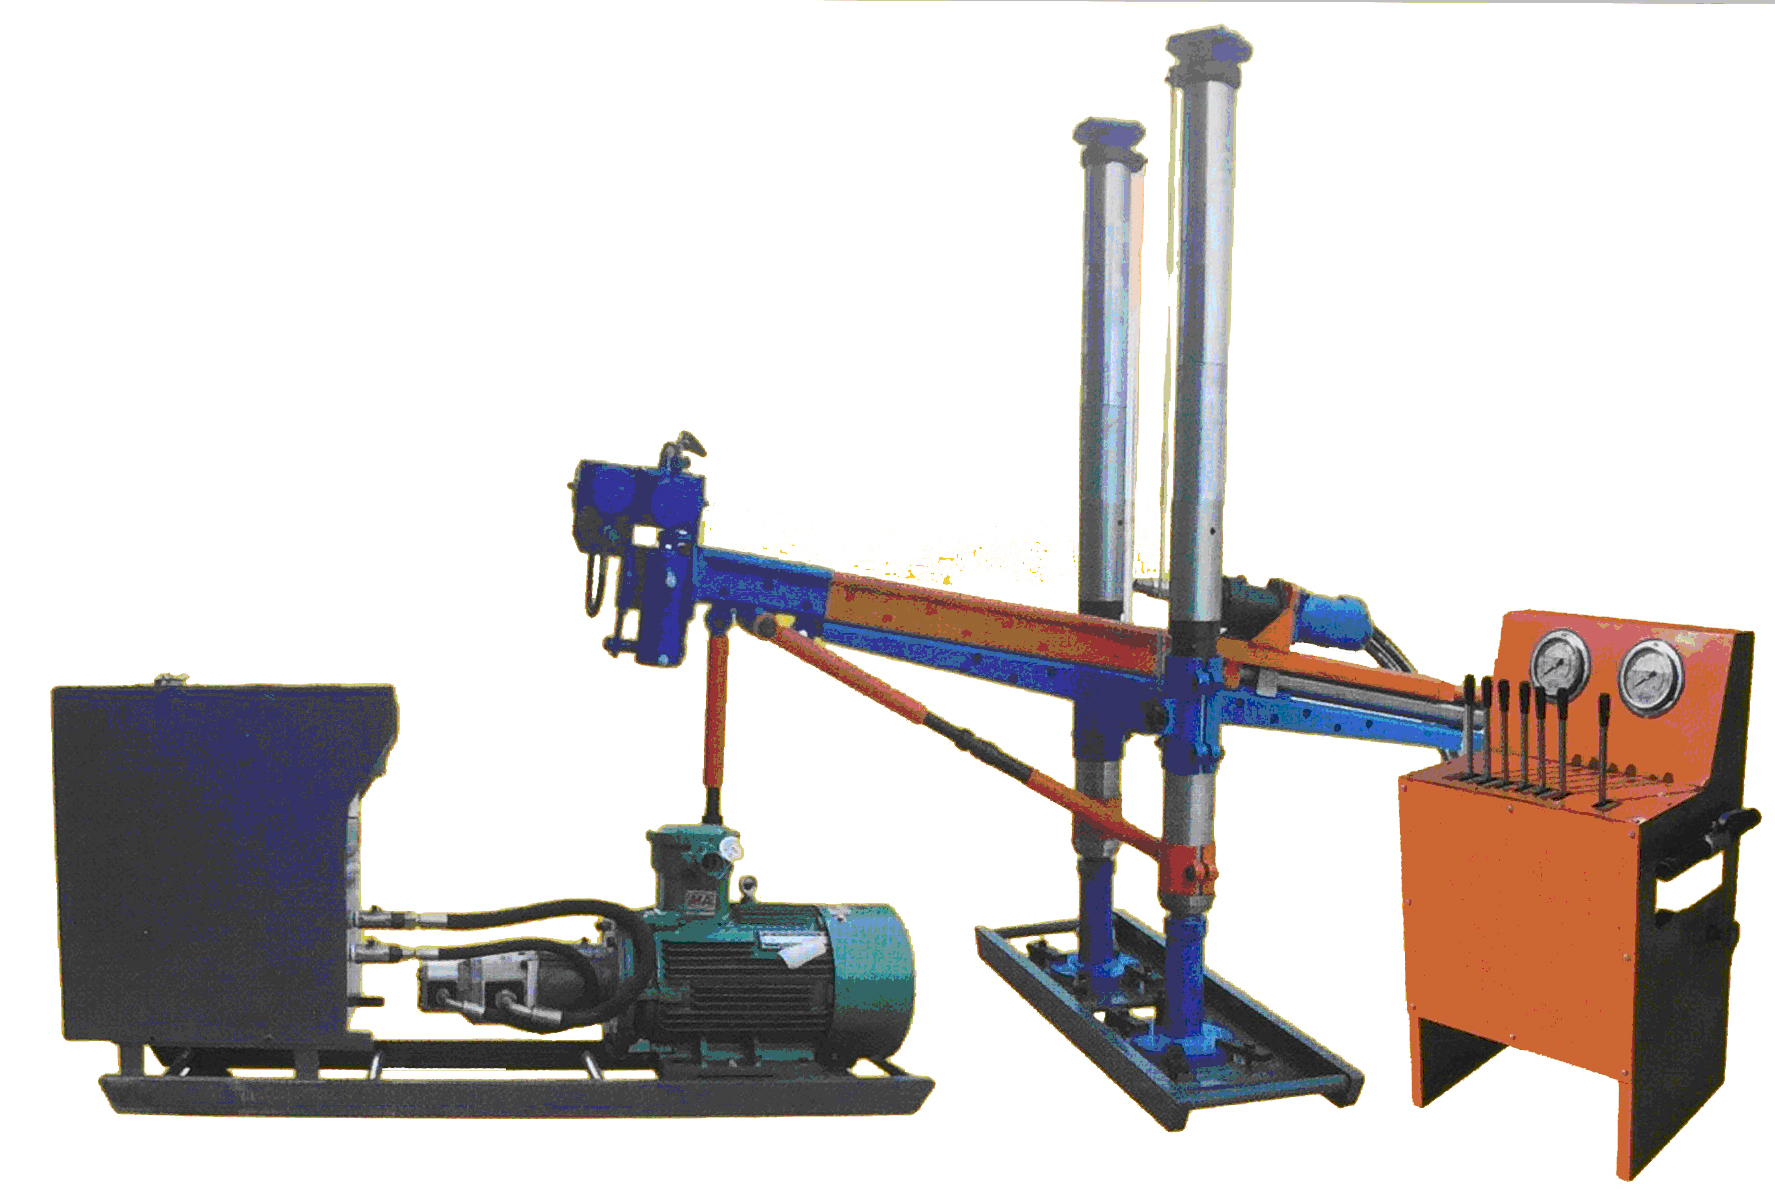 Building Block Multi-Function Drilling Rig